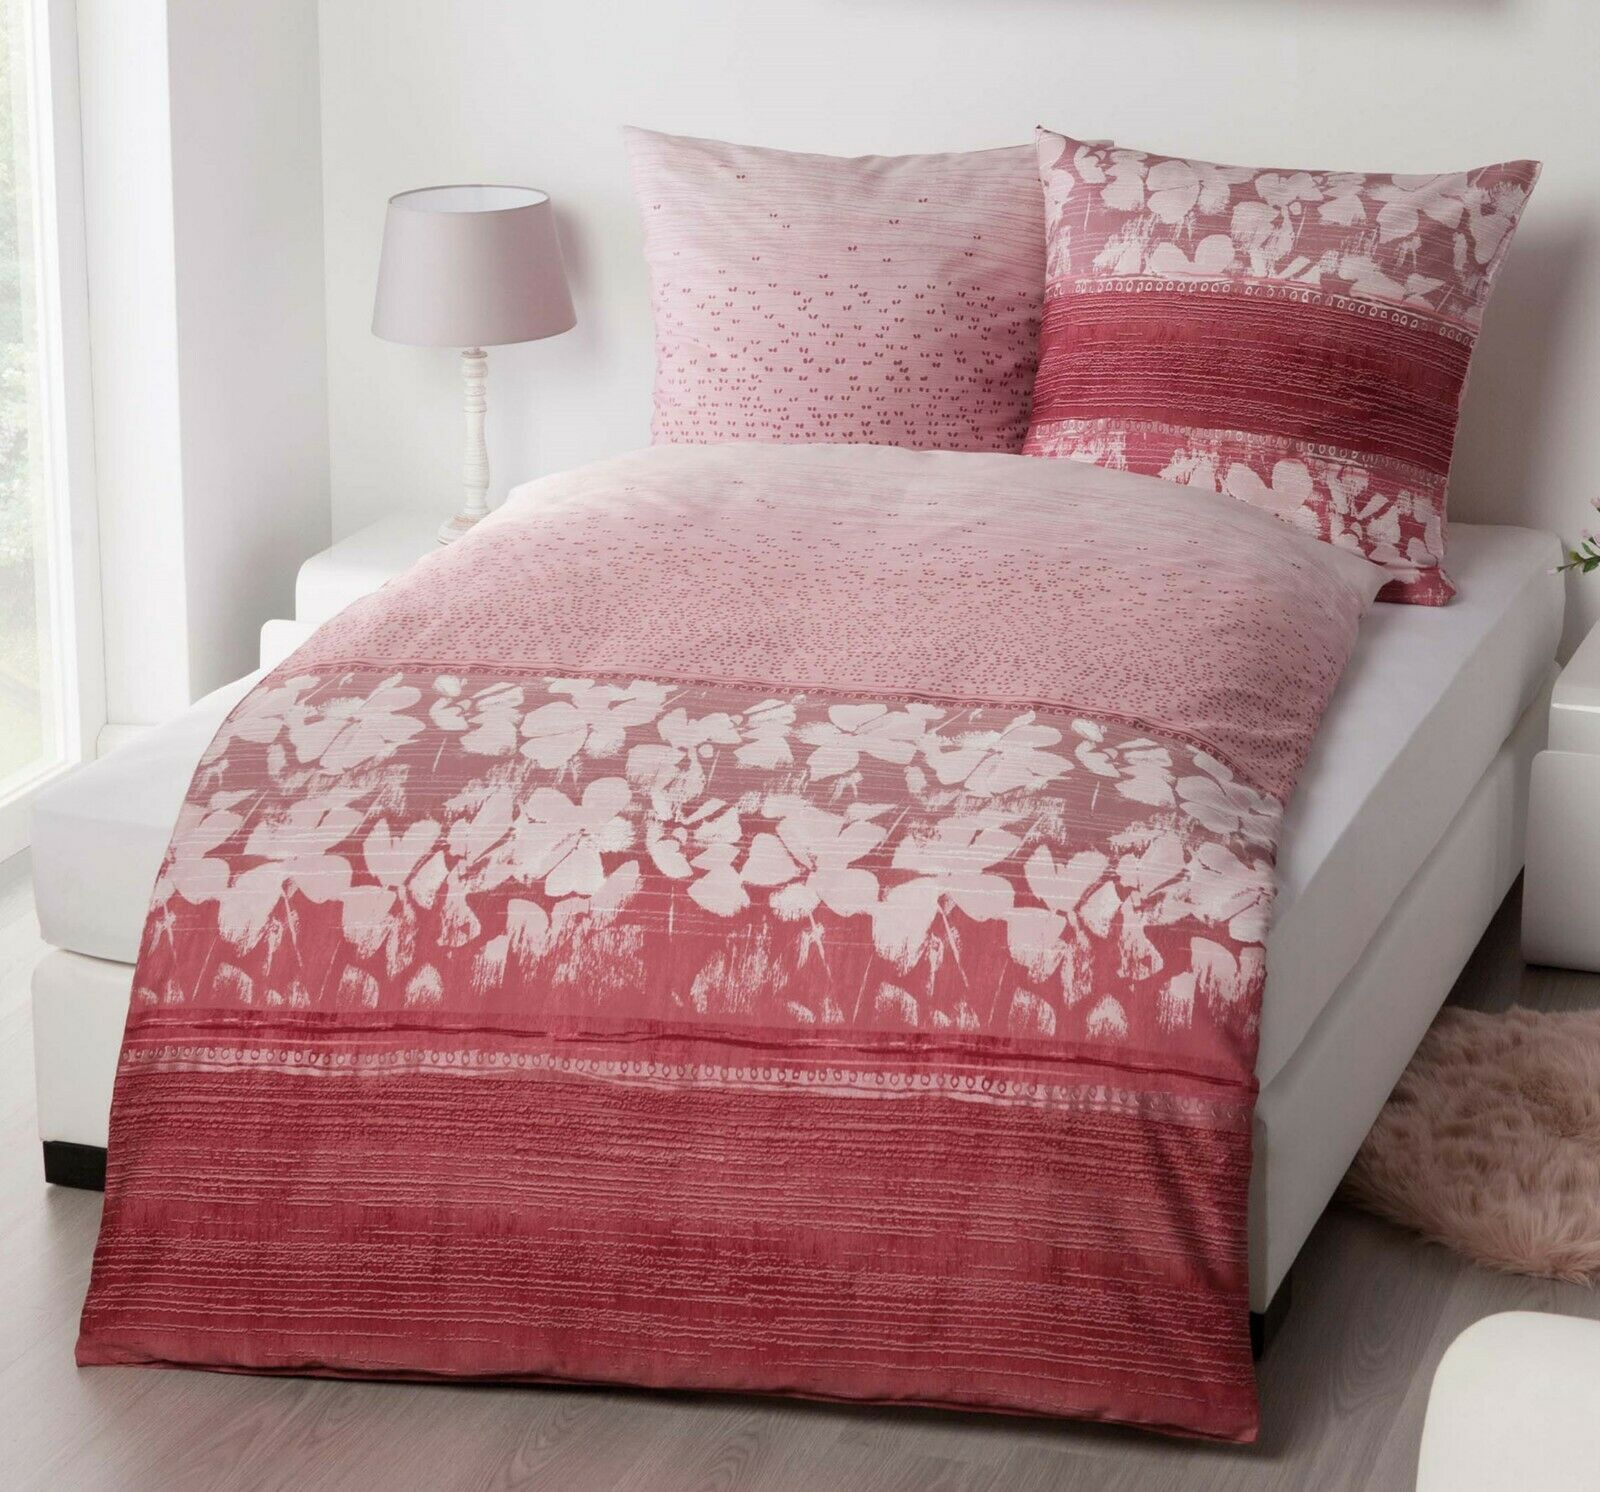 Pink And Black Bedroom Decor Awesome 2 Tlg 836 Reissverschlus